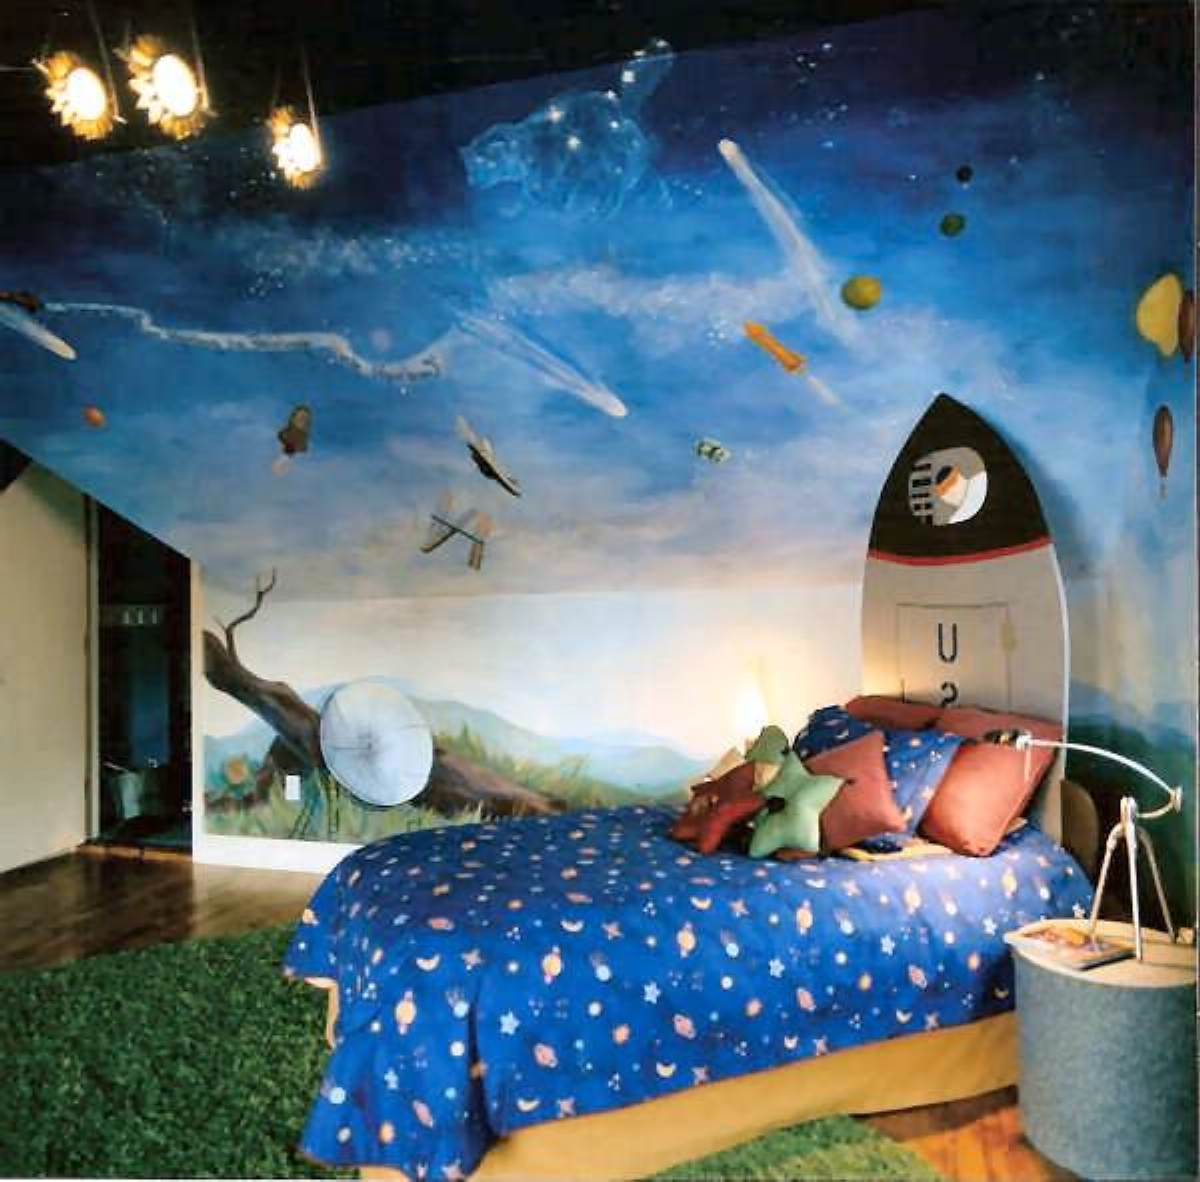 237ad05575917b5f9f9889f2c5a9abb6 +25 Marvelous Kids' Rooms Ceiling Designs Ideas